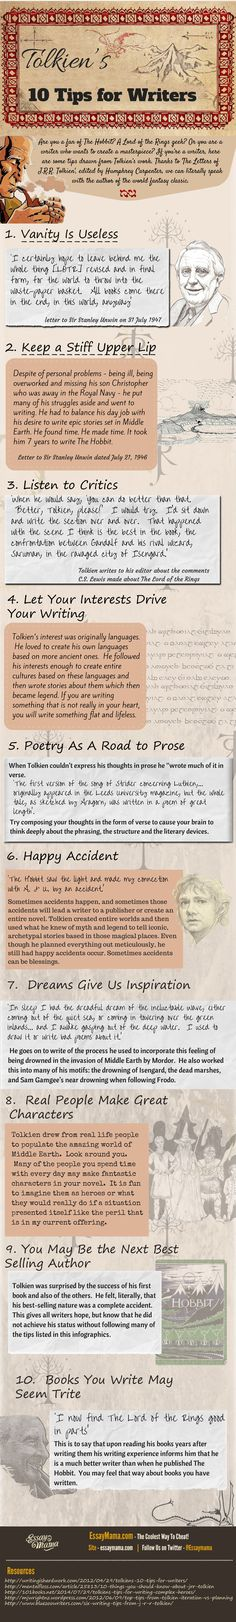 J. R. R. Tolkien 10 Tips For Writers